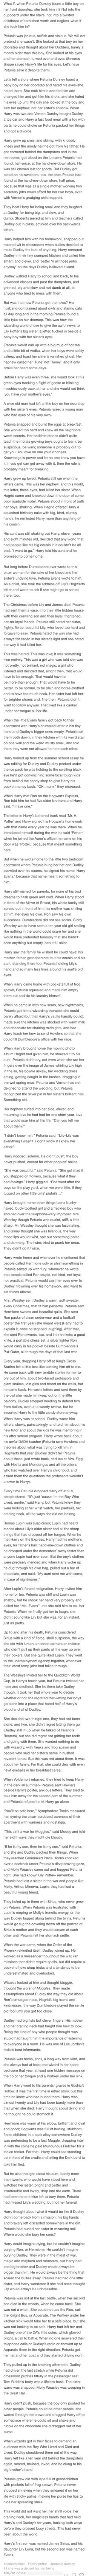 What if Petunia Dursley took Harry in and treated him as one of her own? imagined by | Hark, the empty highways calling | on tumblr, pinned by | Caroline Wong |